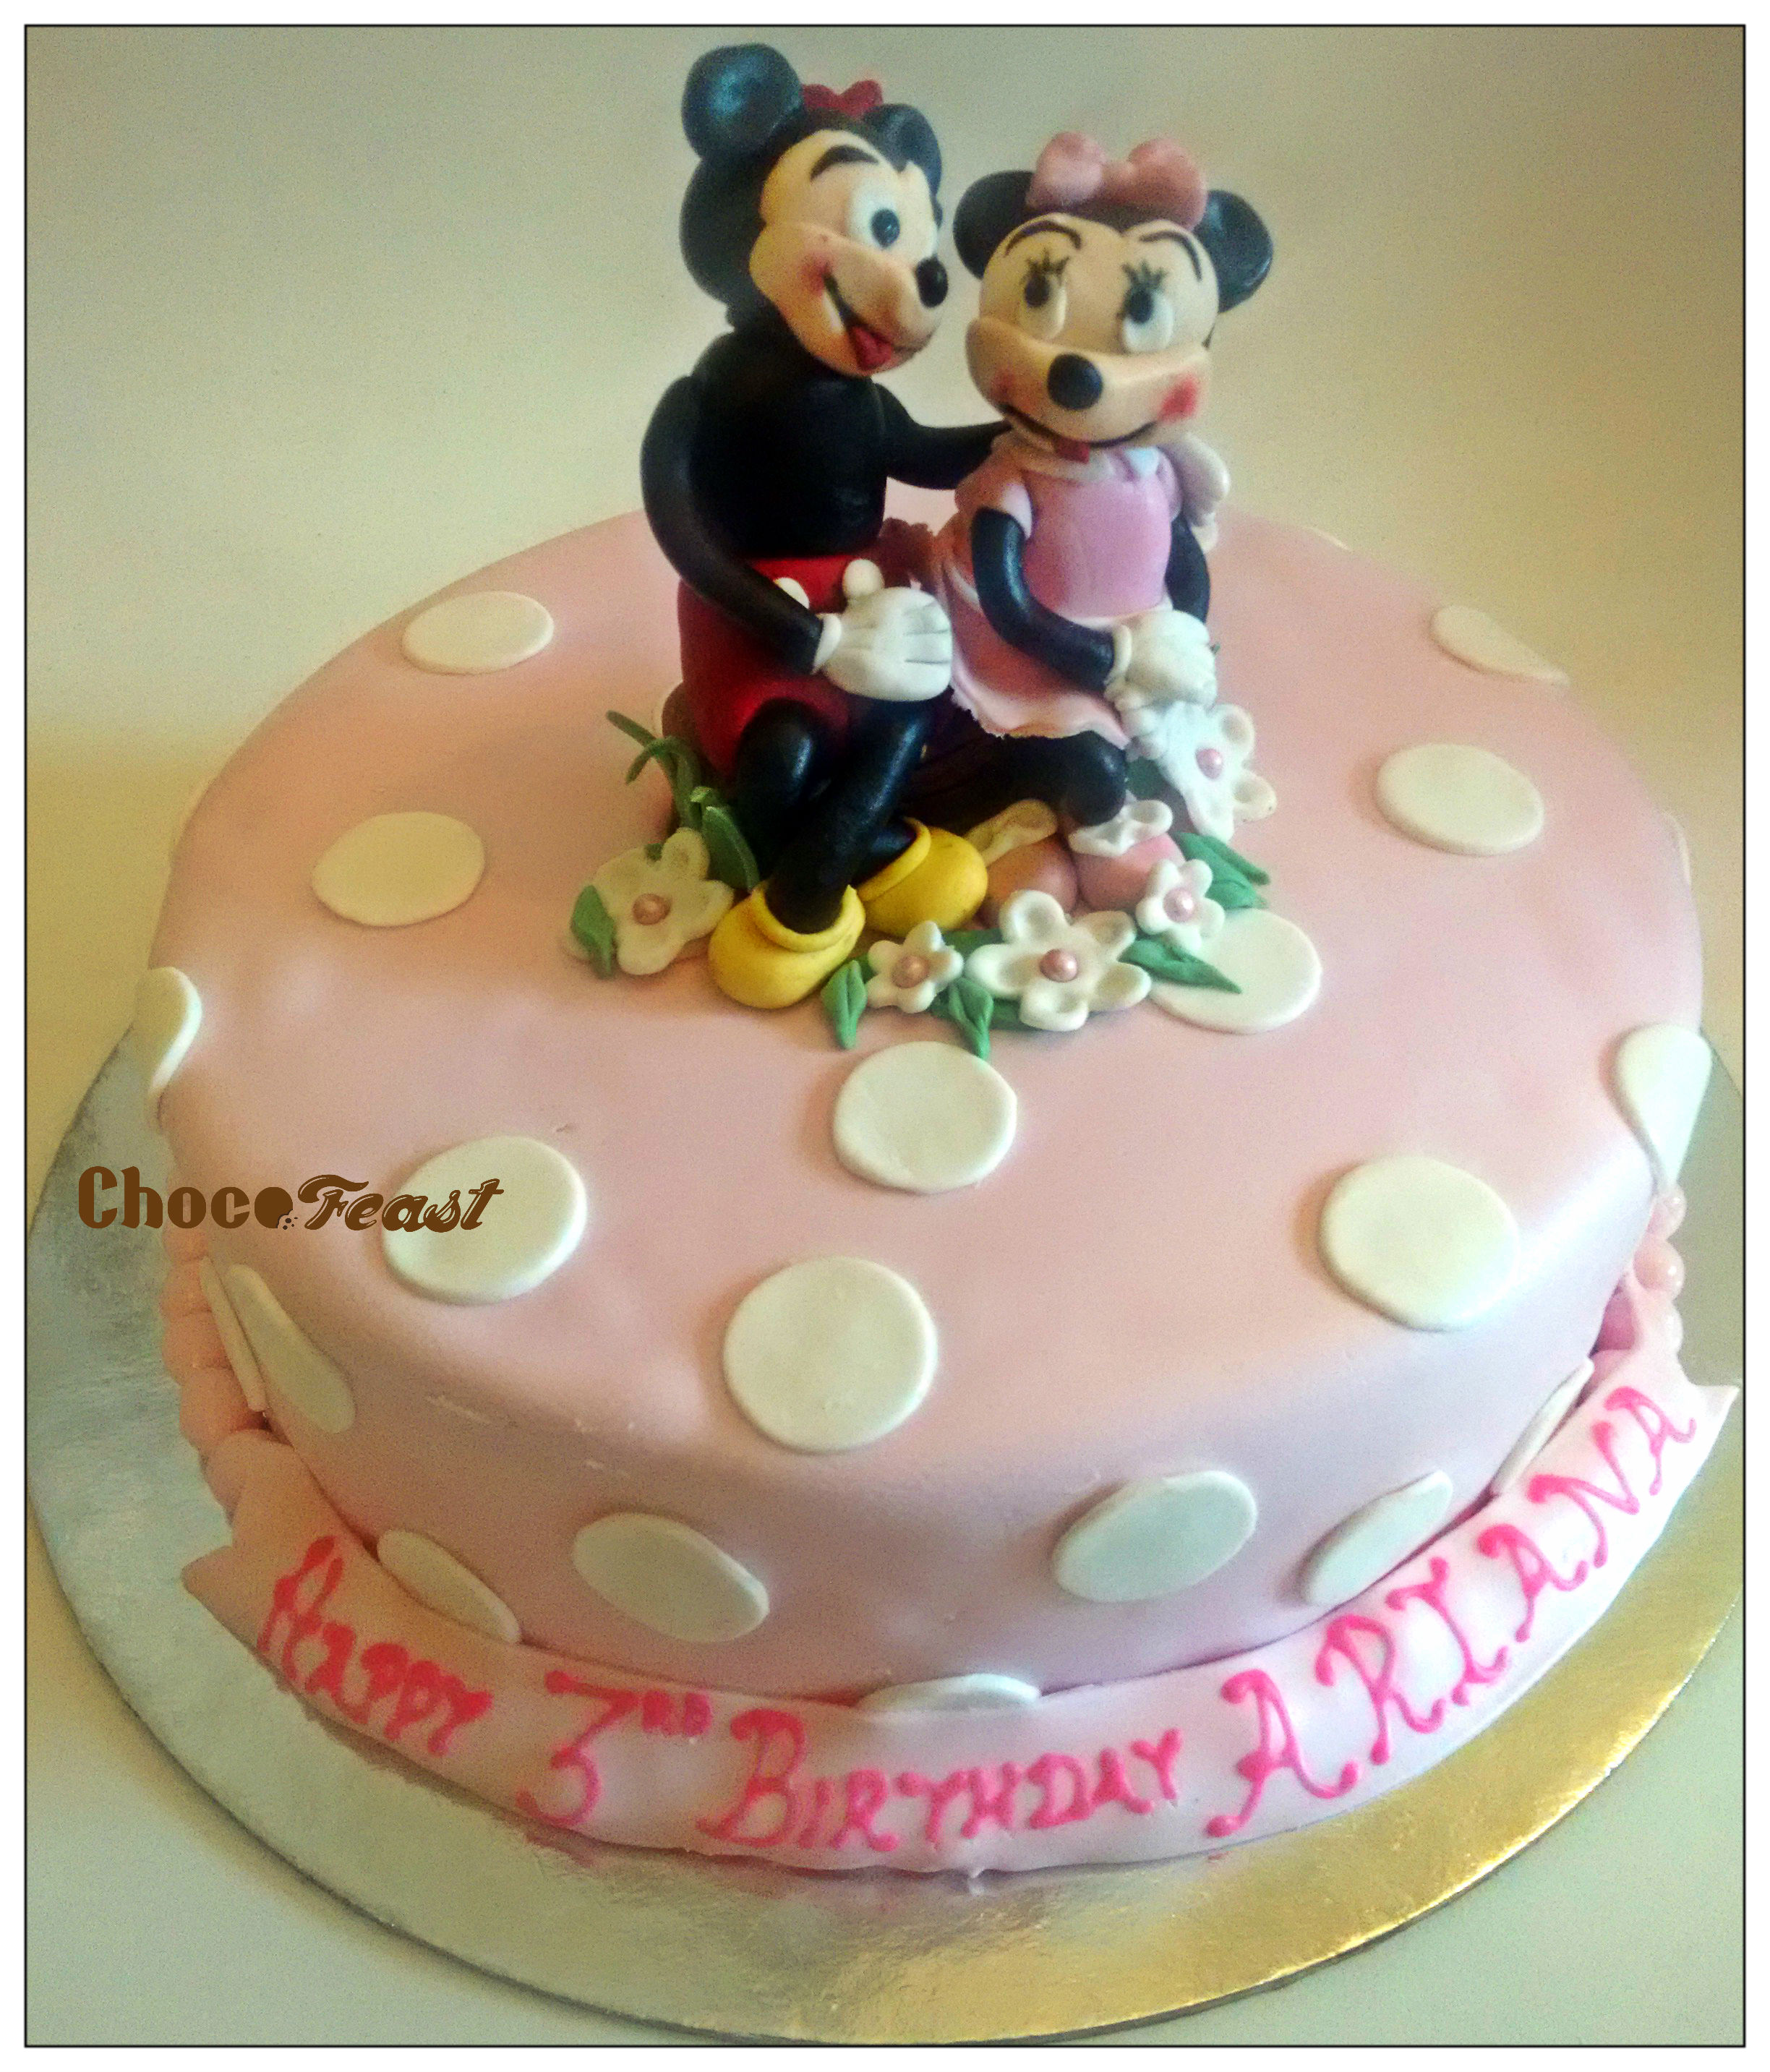 4163ce3904d0 Customized cakes and cupcakes orders Mumbai